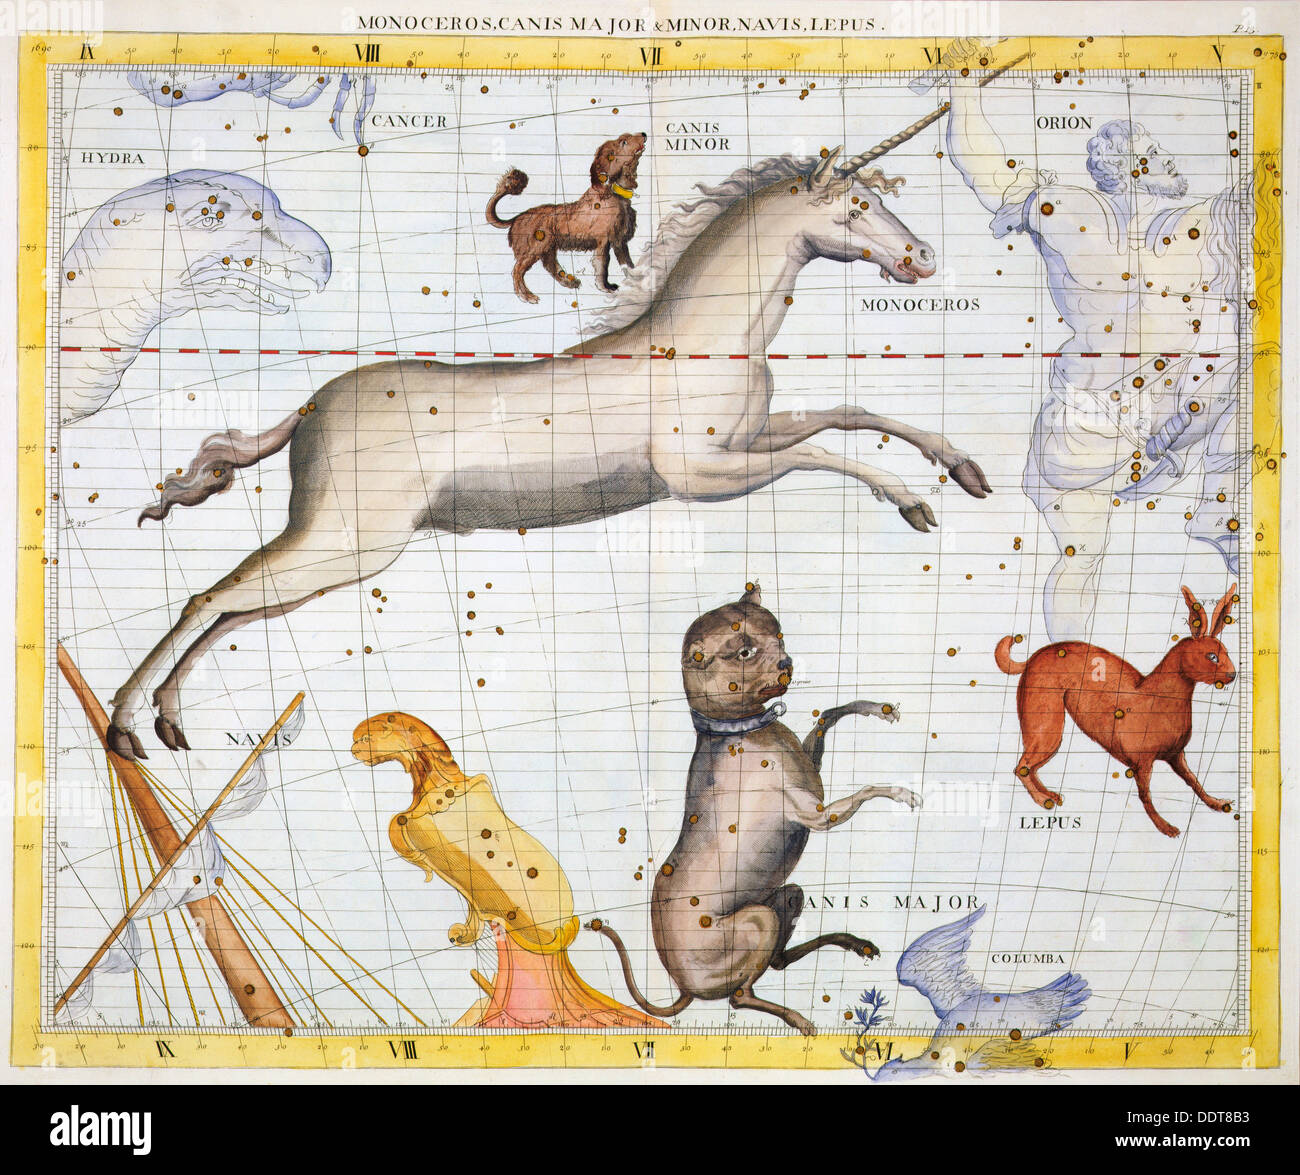 Constellations of Monoceros, Canis Major and Canis Minor, 1729. Artist:  Unknown